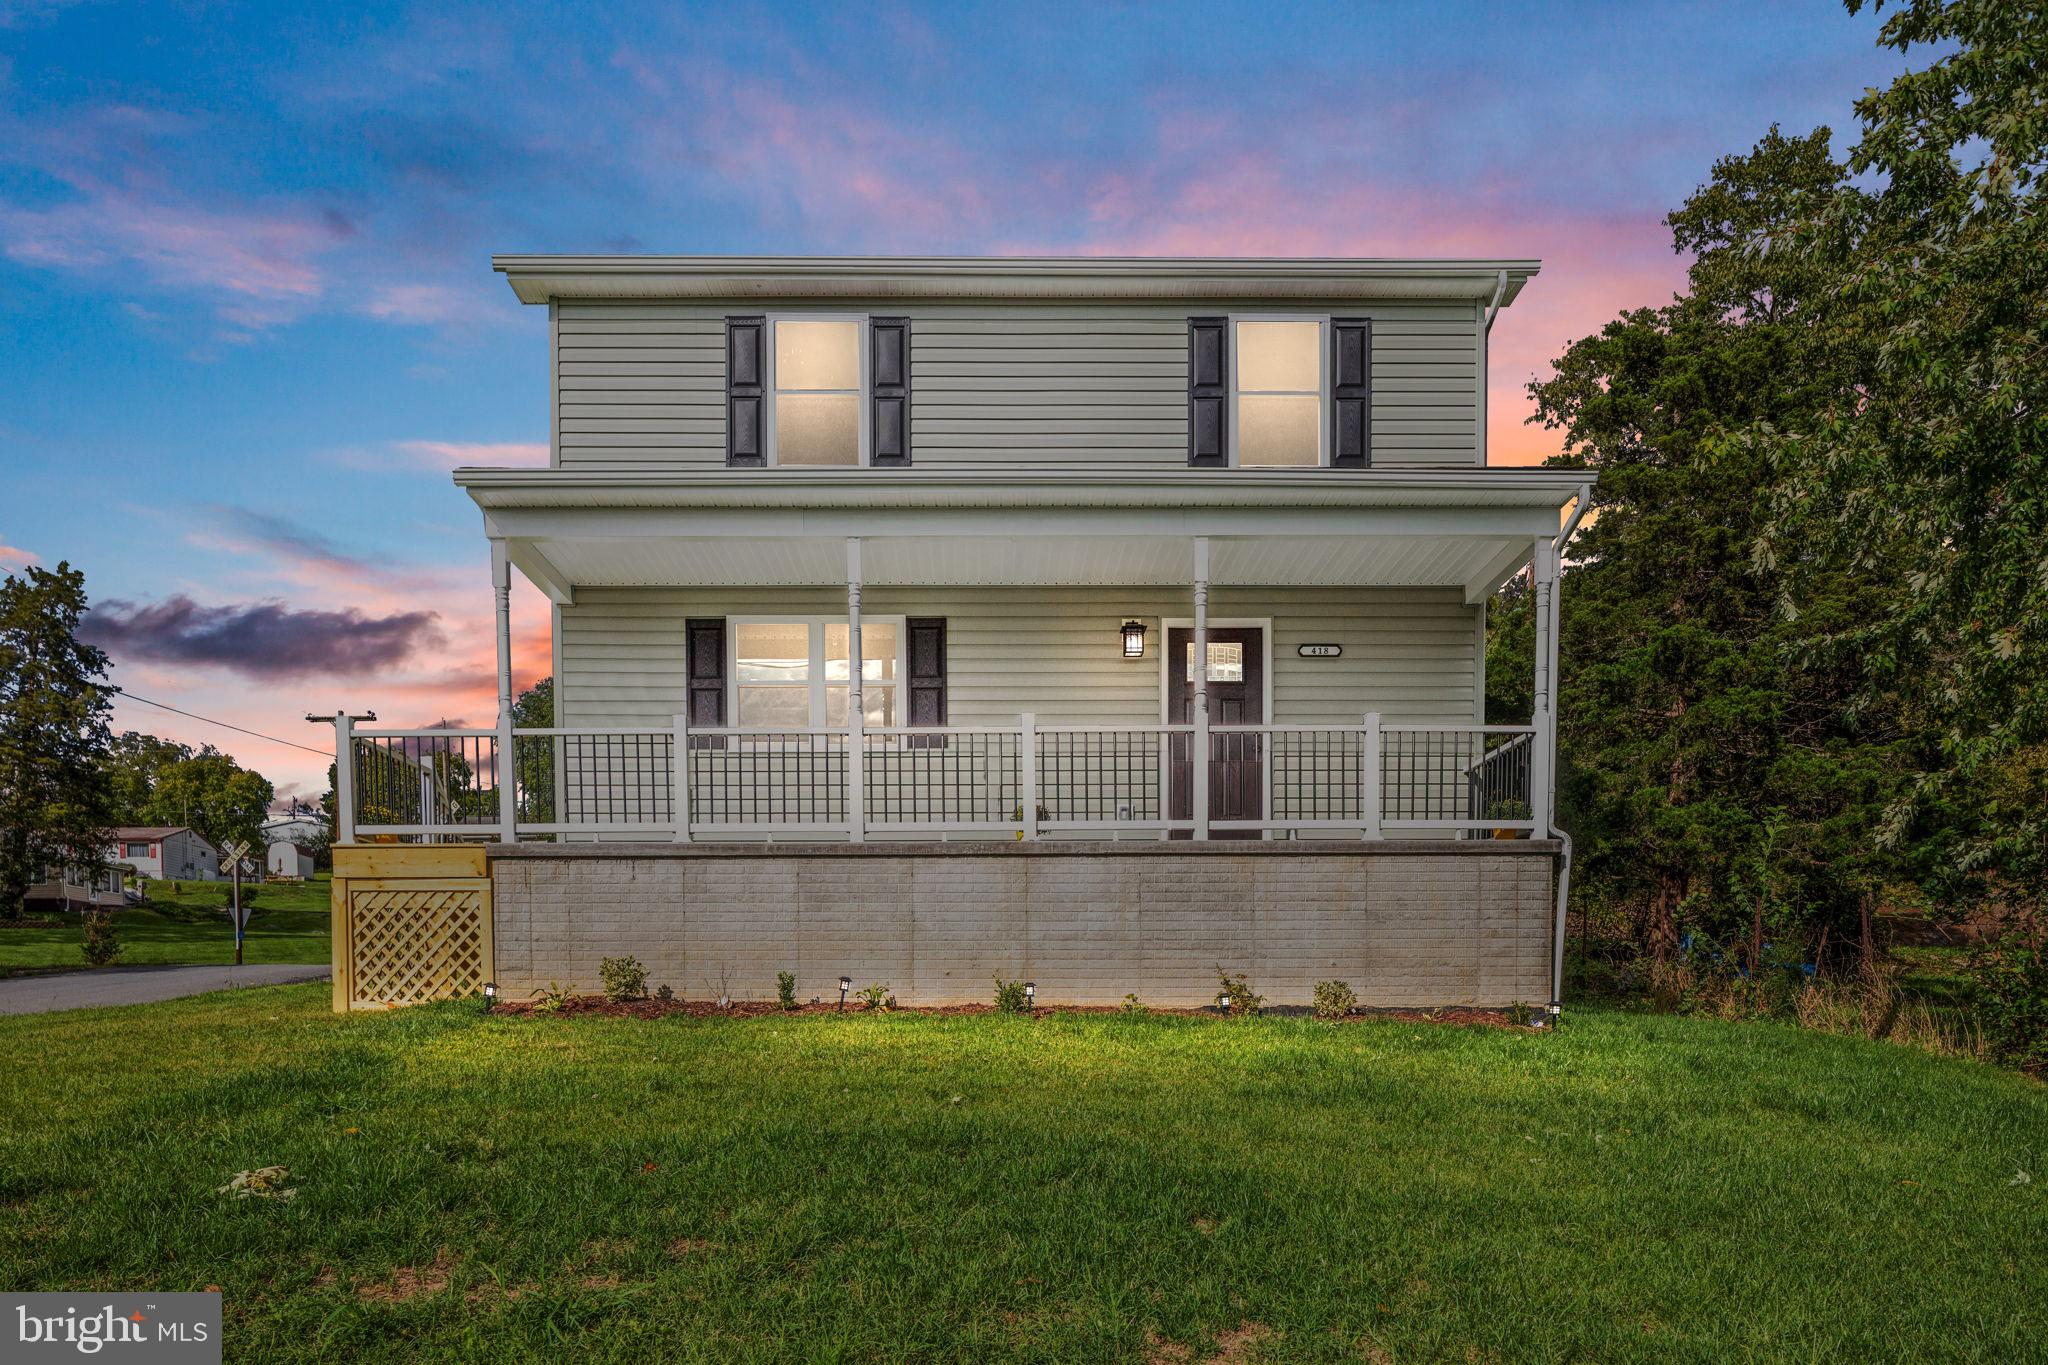 BRAND NEW HOUSE in Strasburg for sale!  Come check out this 3 bedroom, 2 1/2 bathroom Colonial on a nice corner lot.  This one is available to move in as soon as possible.  A large Trex front porch, patio area in the back and landscaping with landscaping lights for exterior appeal.   Inside you will find a spacious kitchen, dining room, living room, laundry room and half bath all with vinyl plank flooring and a carpeted living room.  The kitchen features stainless steel appliances, eat-in area, ceiling fan and a pantry.  Upstairs you will find 2 bedrooms,  full bathroom and a primary suite with a private bathroom and walk-in closet.  Close to downtown shopping, antiques, brewery, and restaurants and minutes to Interstates 81 and 66.  Call me today to get in to view this one!